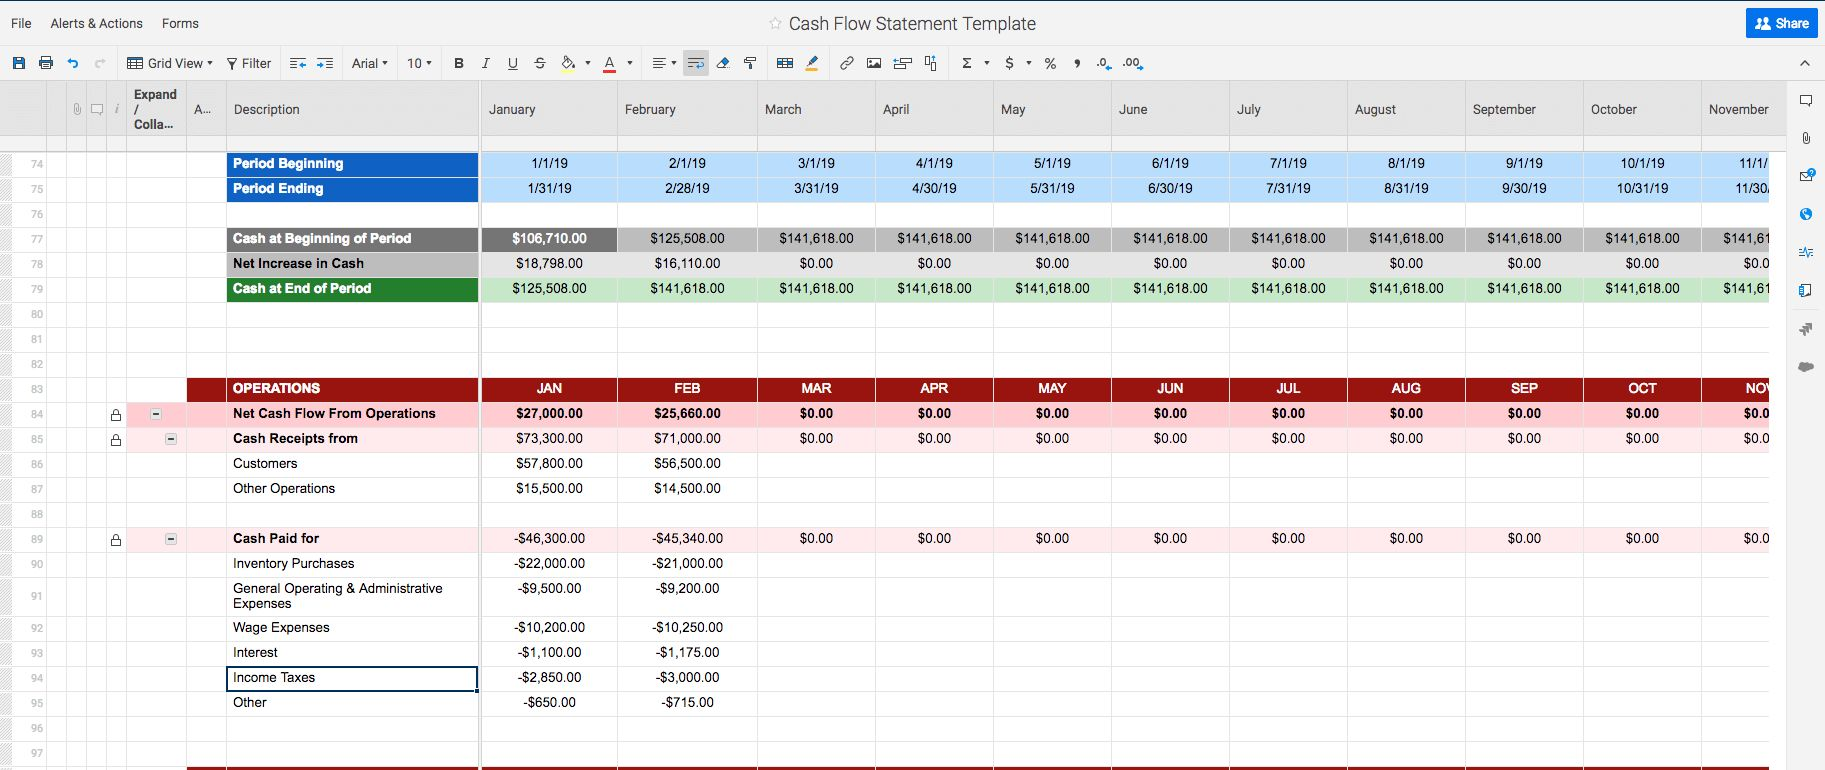 Free Cash Flow Statement Templates Smartsheet Throughout